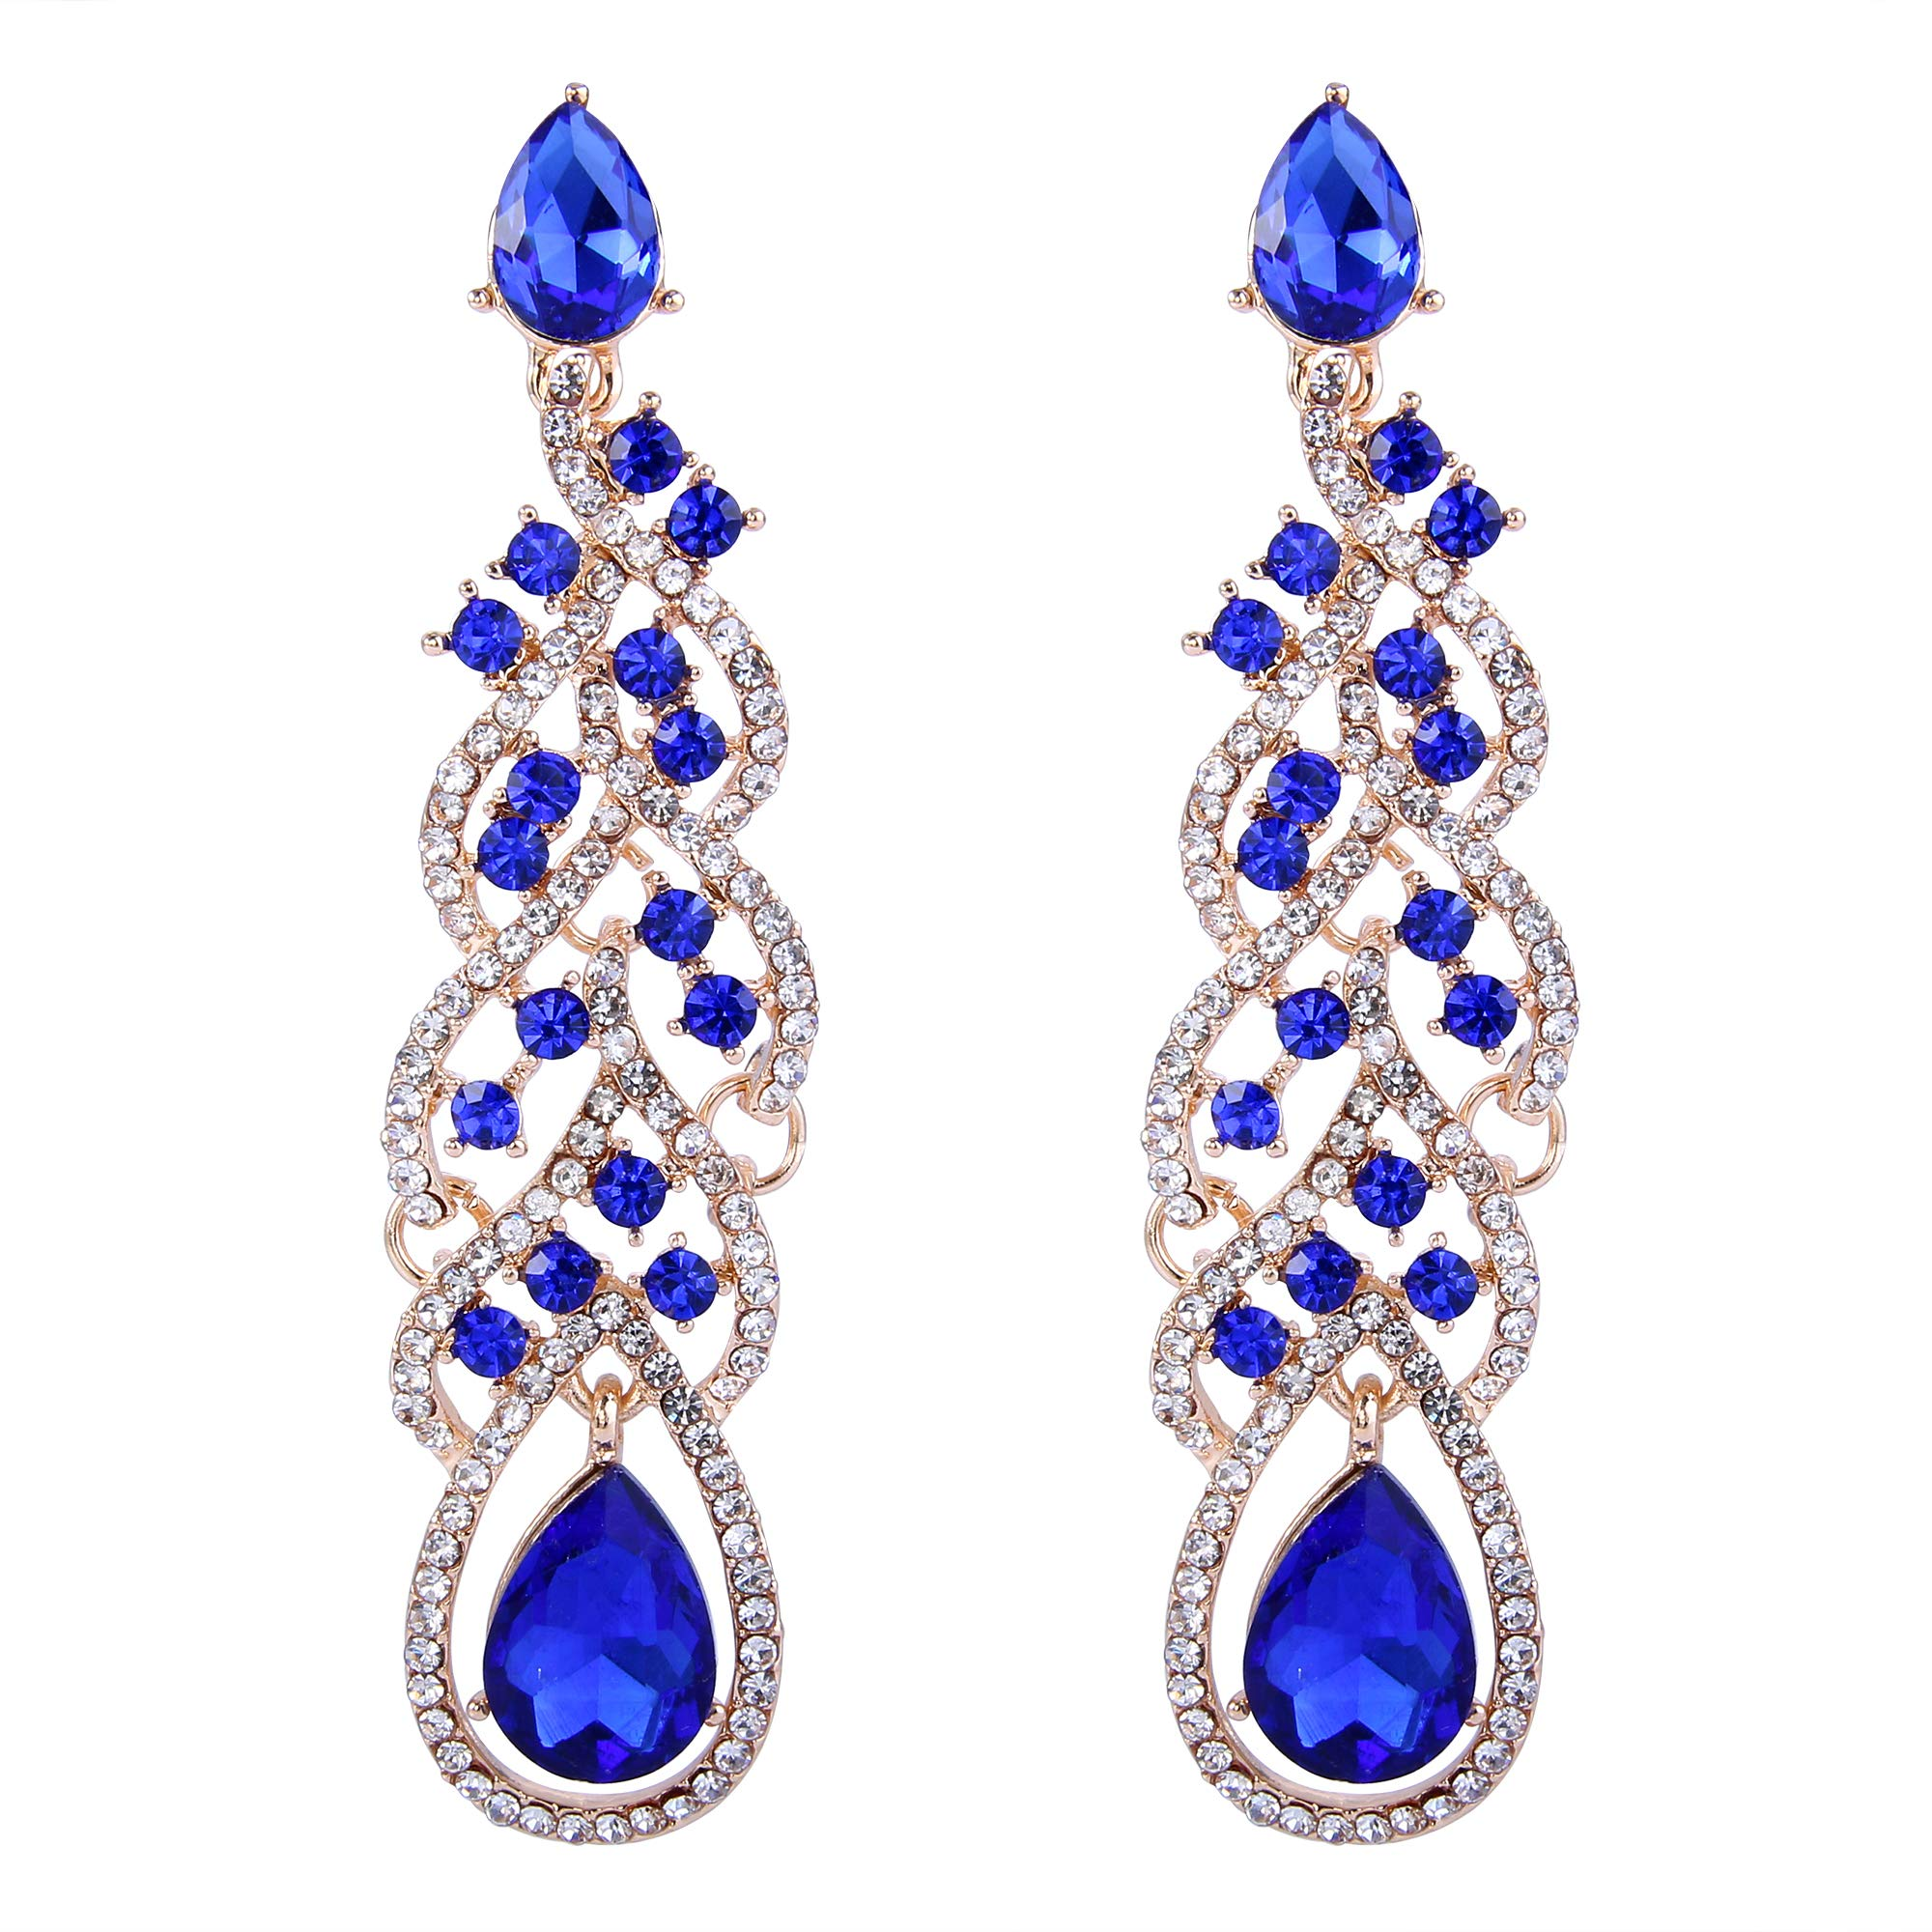 BriLove Gold-Toned Dangle Earrings for Women Fashion Vintage Inspired Crystal Teardrop Hollow Floral Leaf Cluster Earrings Royal Blue Sapphire Color